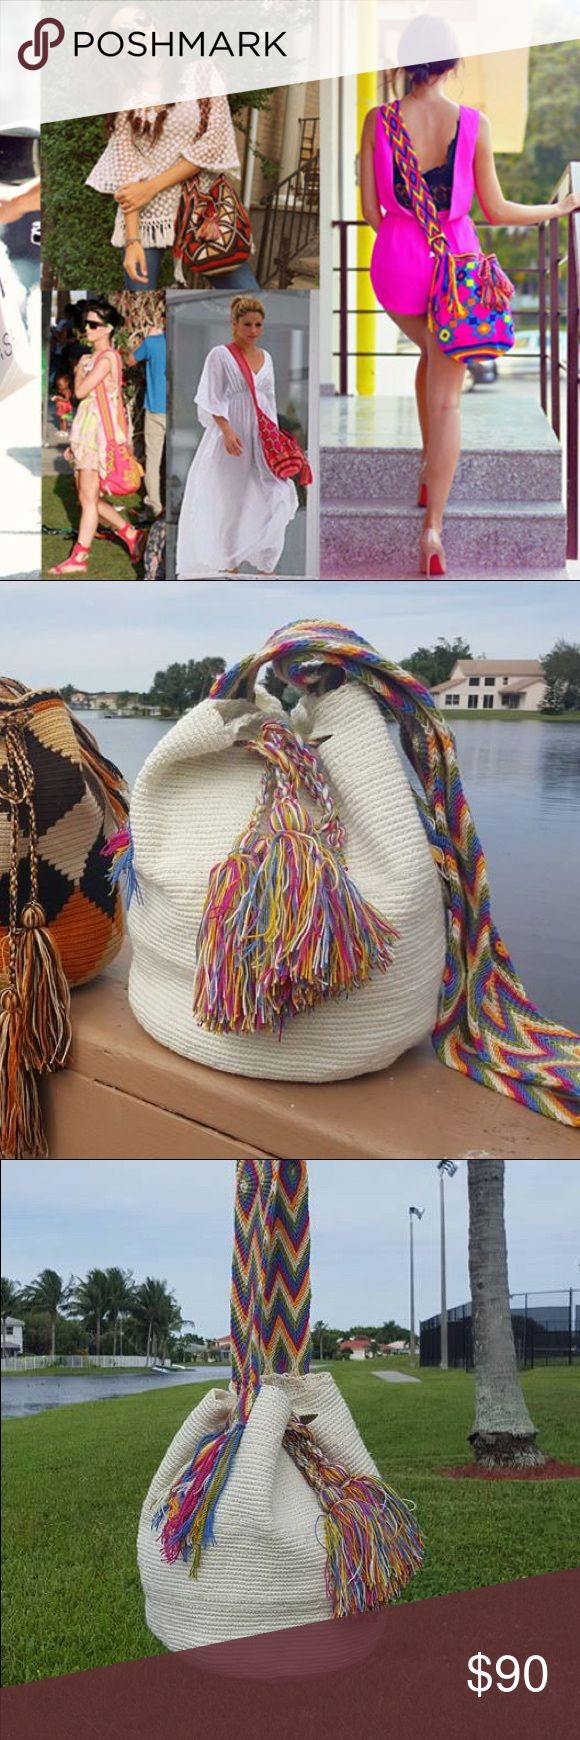 Cream gorgeous ️handmade wayuu bag BlACK FRIDAY SALE   Authentic new luxury mochila bag. ️handmade by Indian wayuu community of Colombia. Each bag is one of a kind and made with absolute skills and dedication. Each bag take around 20 days to make. Shakira, Katie perry and Monaco princes use wayuu bags Bags Shoulder Bags